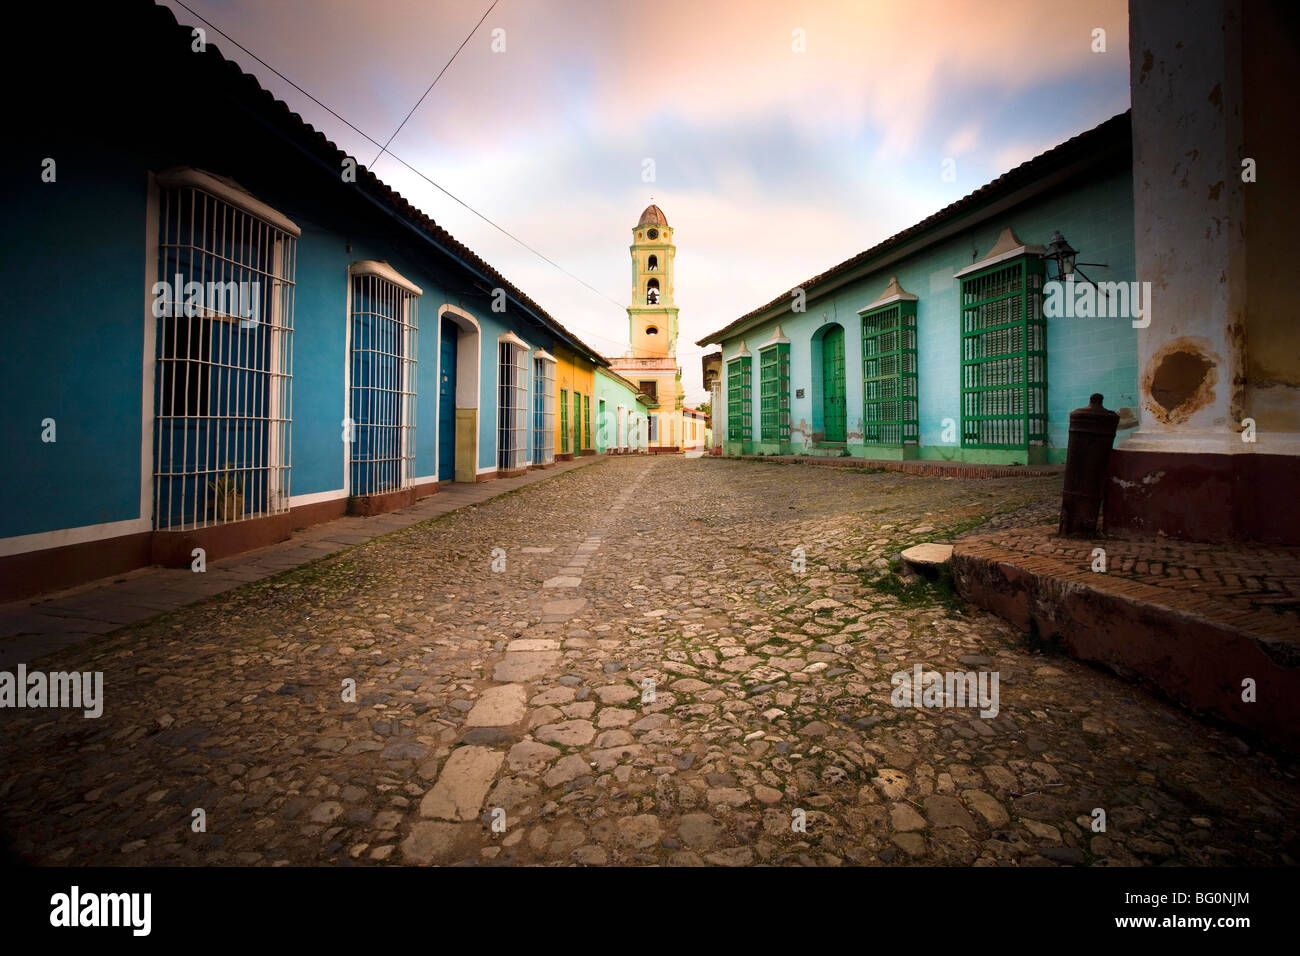 Deserted cobbled street looking towards the bell tower of Inglesia y Convento de San Francisco off Plaza Major, - Stock Image